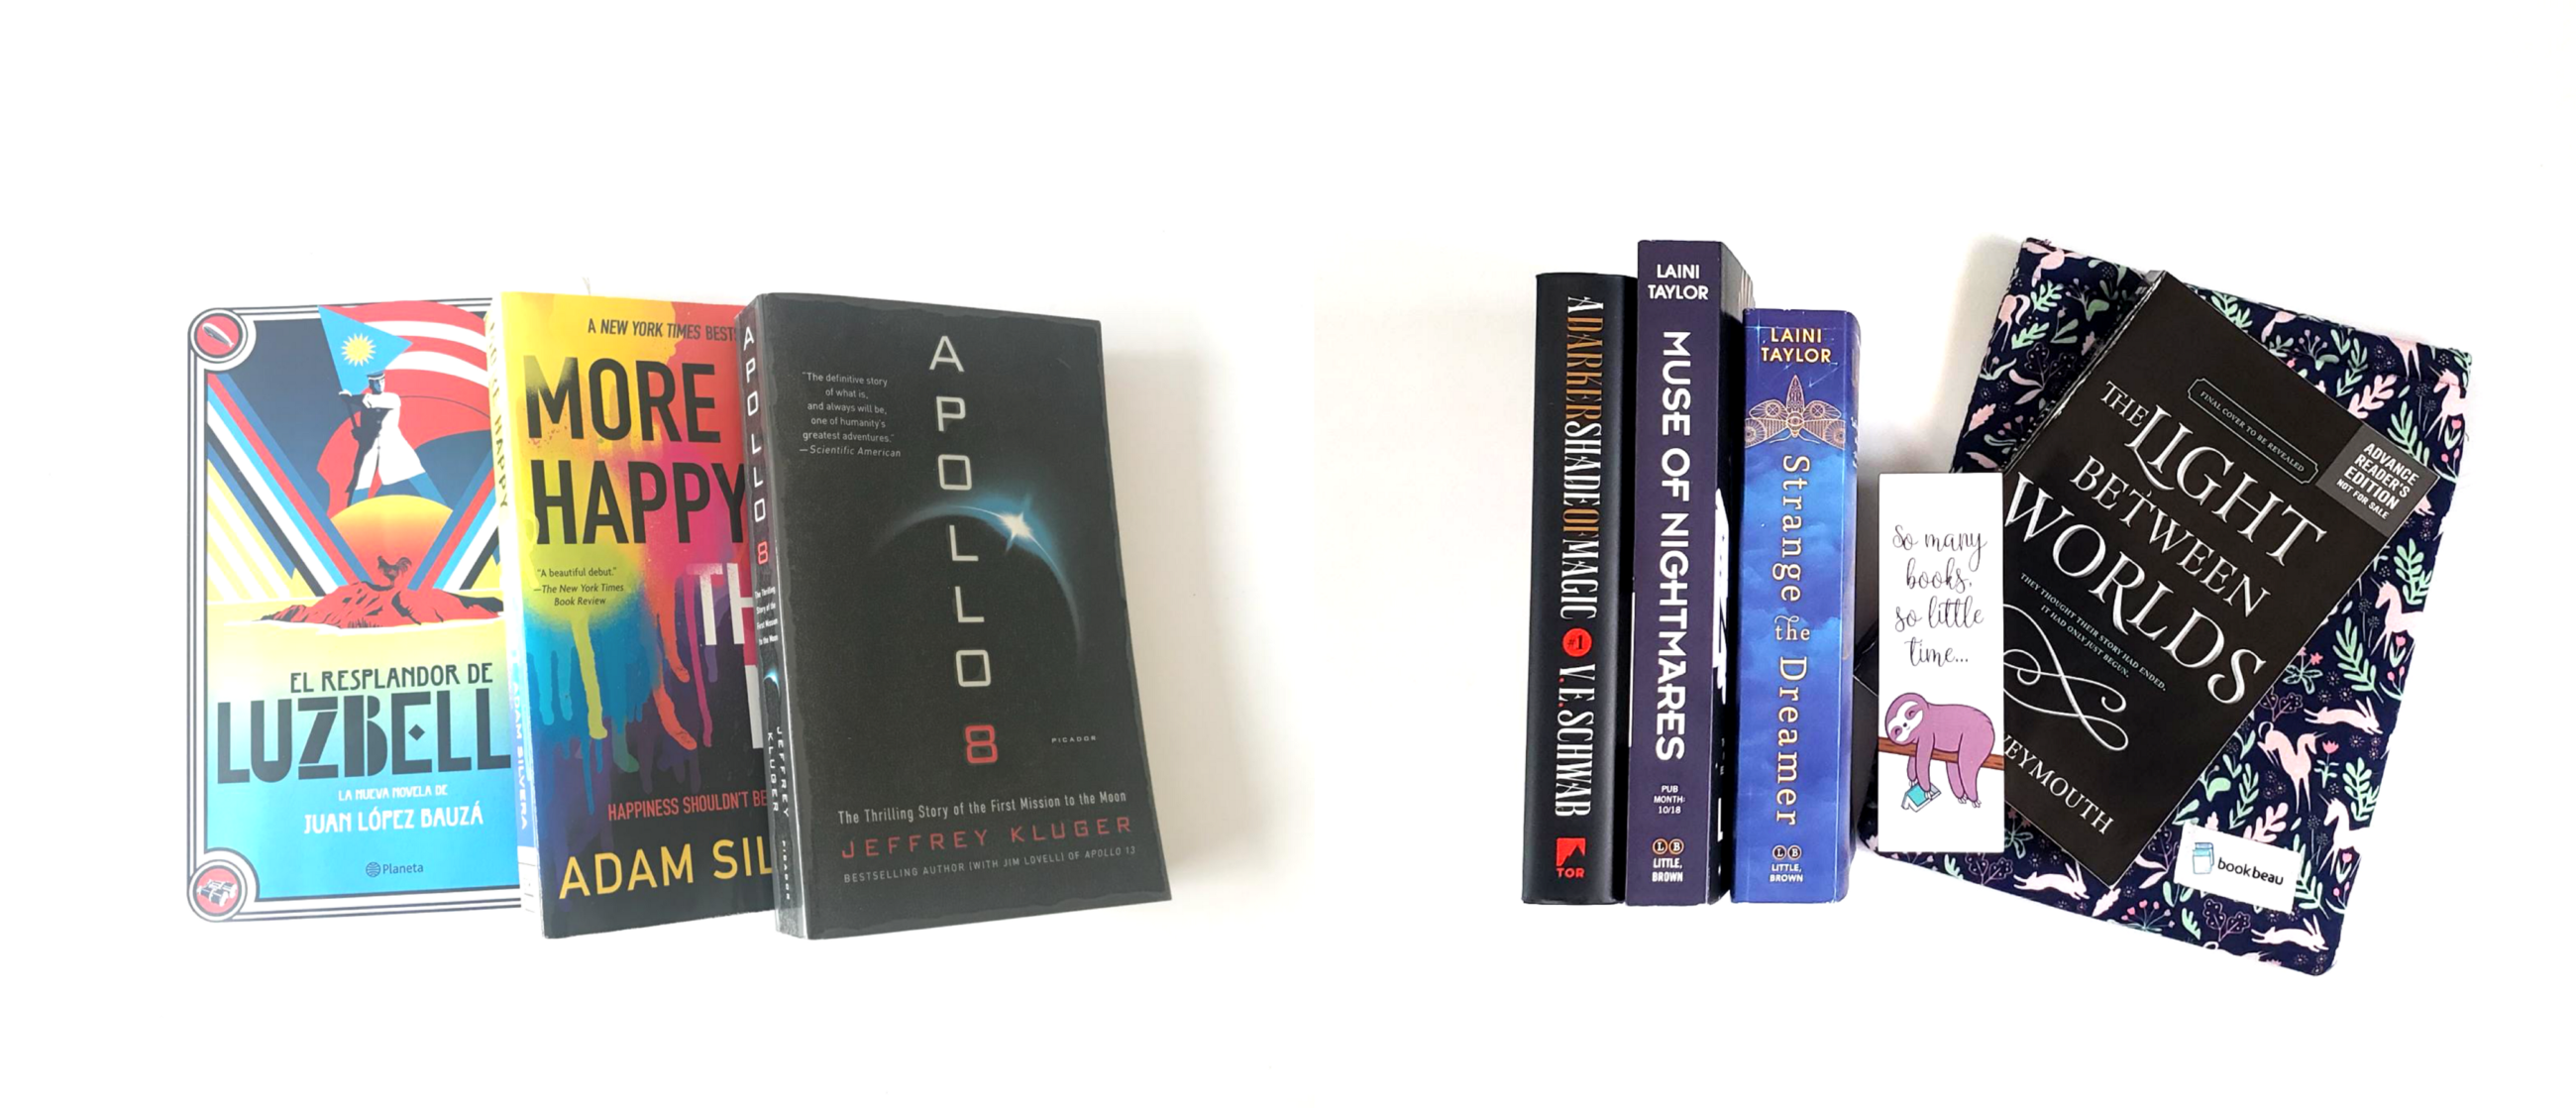 Our team's October TBR